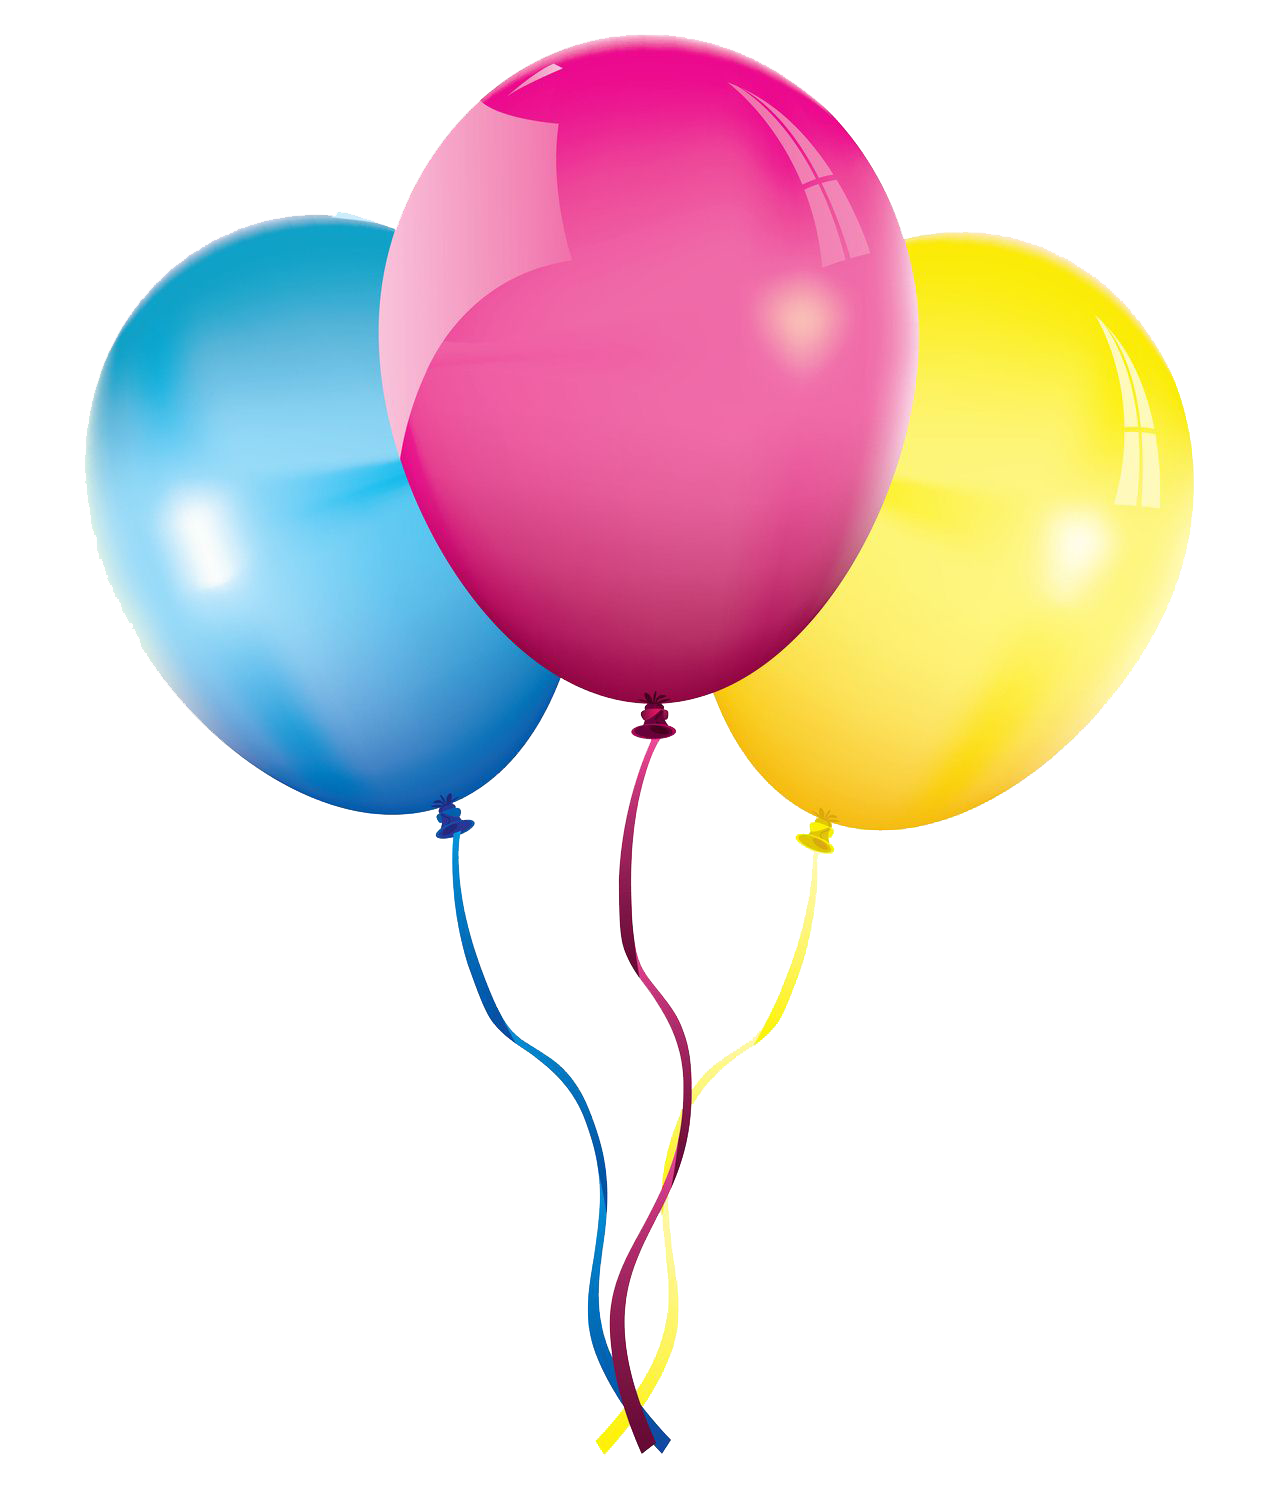 Balloons Png - Balloons PNG File